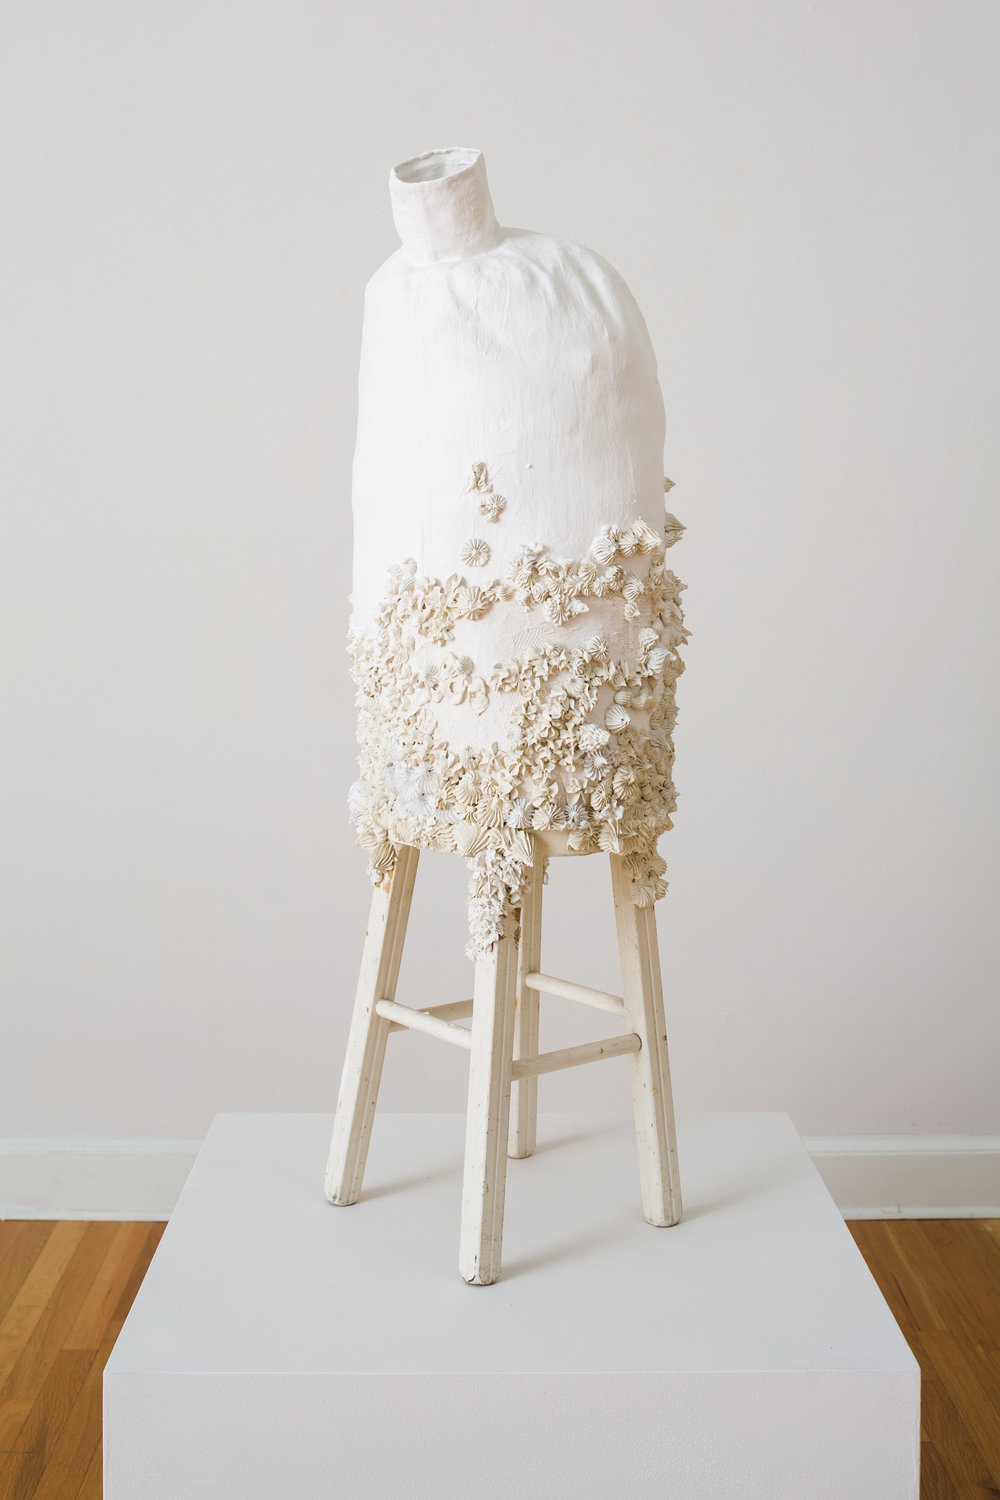 Flora Pearlinious  , 2012, Installation view Hydrocal, fabric and wood 42 x 14 x 14 in. (106.68 x 35.56 x 35.56 cm)